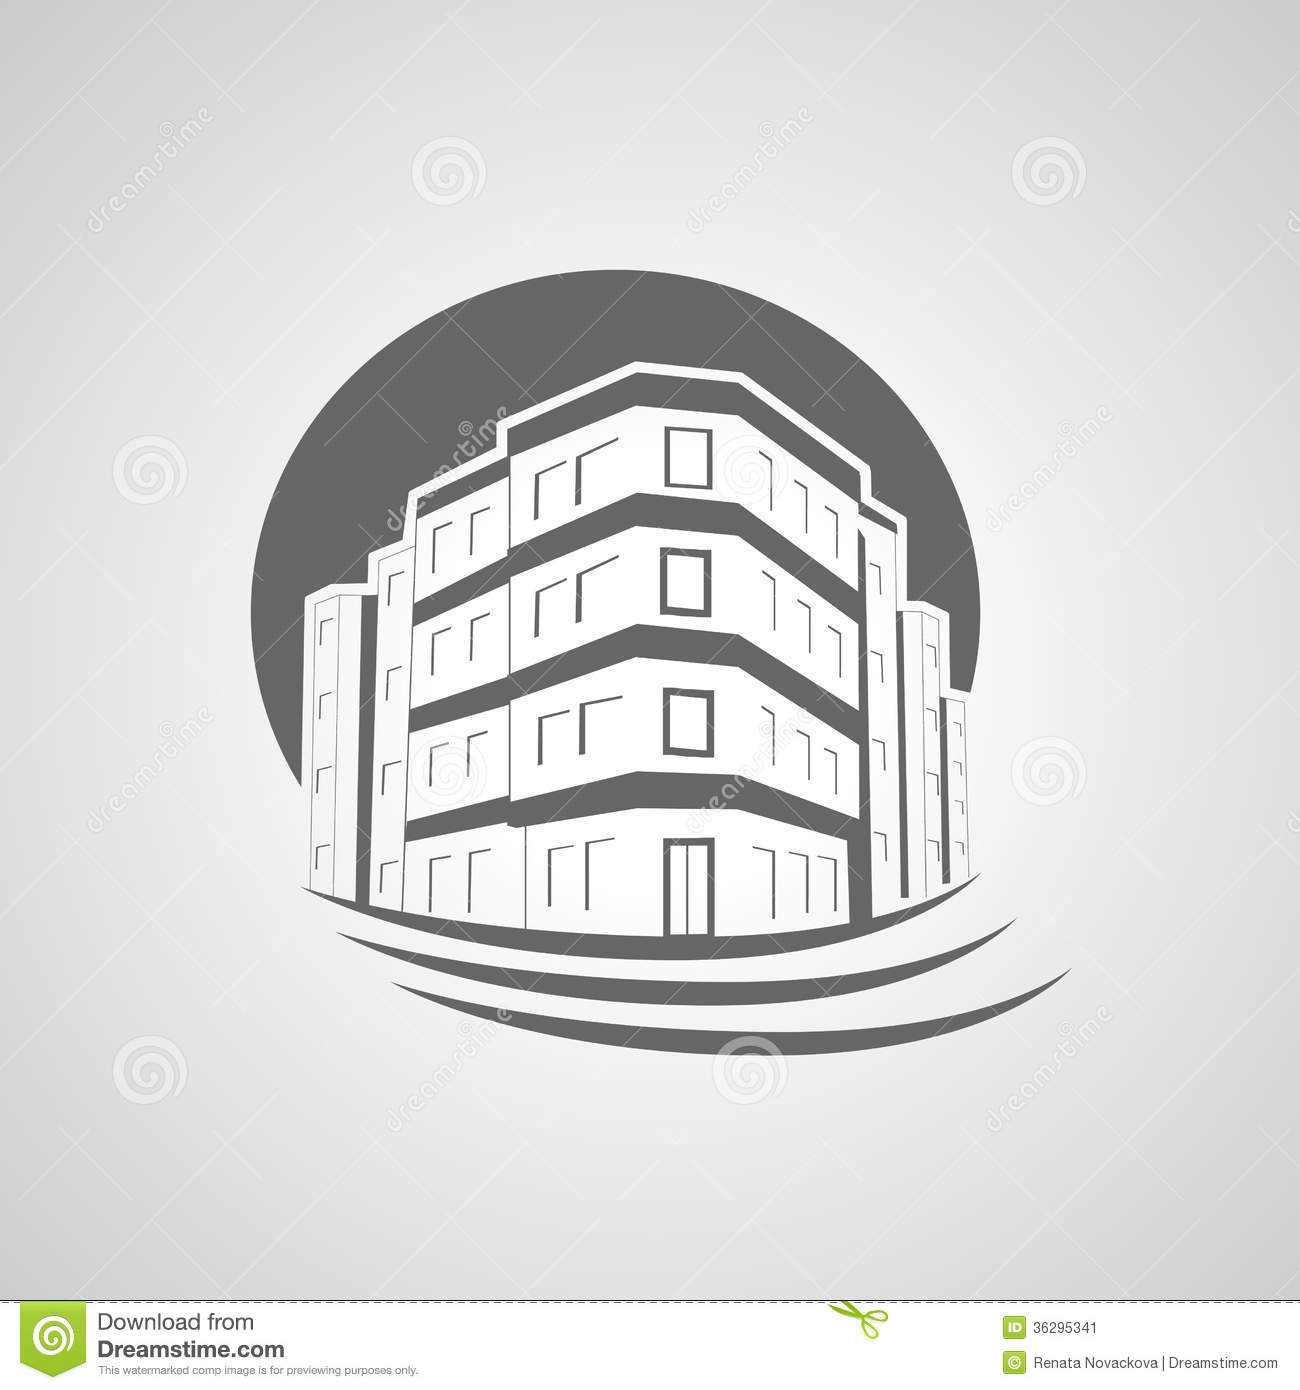 ... Logo Design together with House Symbol. on real estate home logo icon